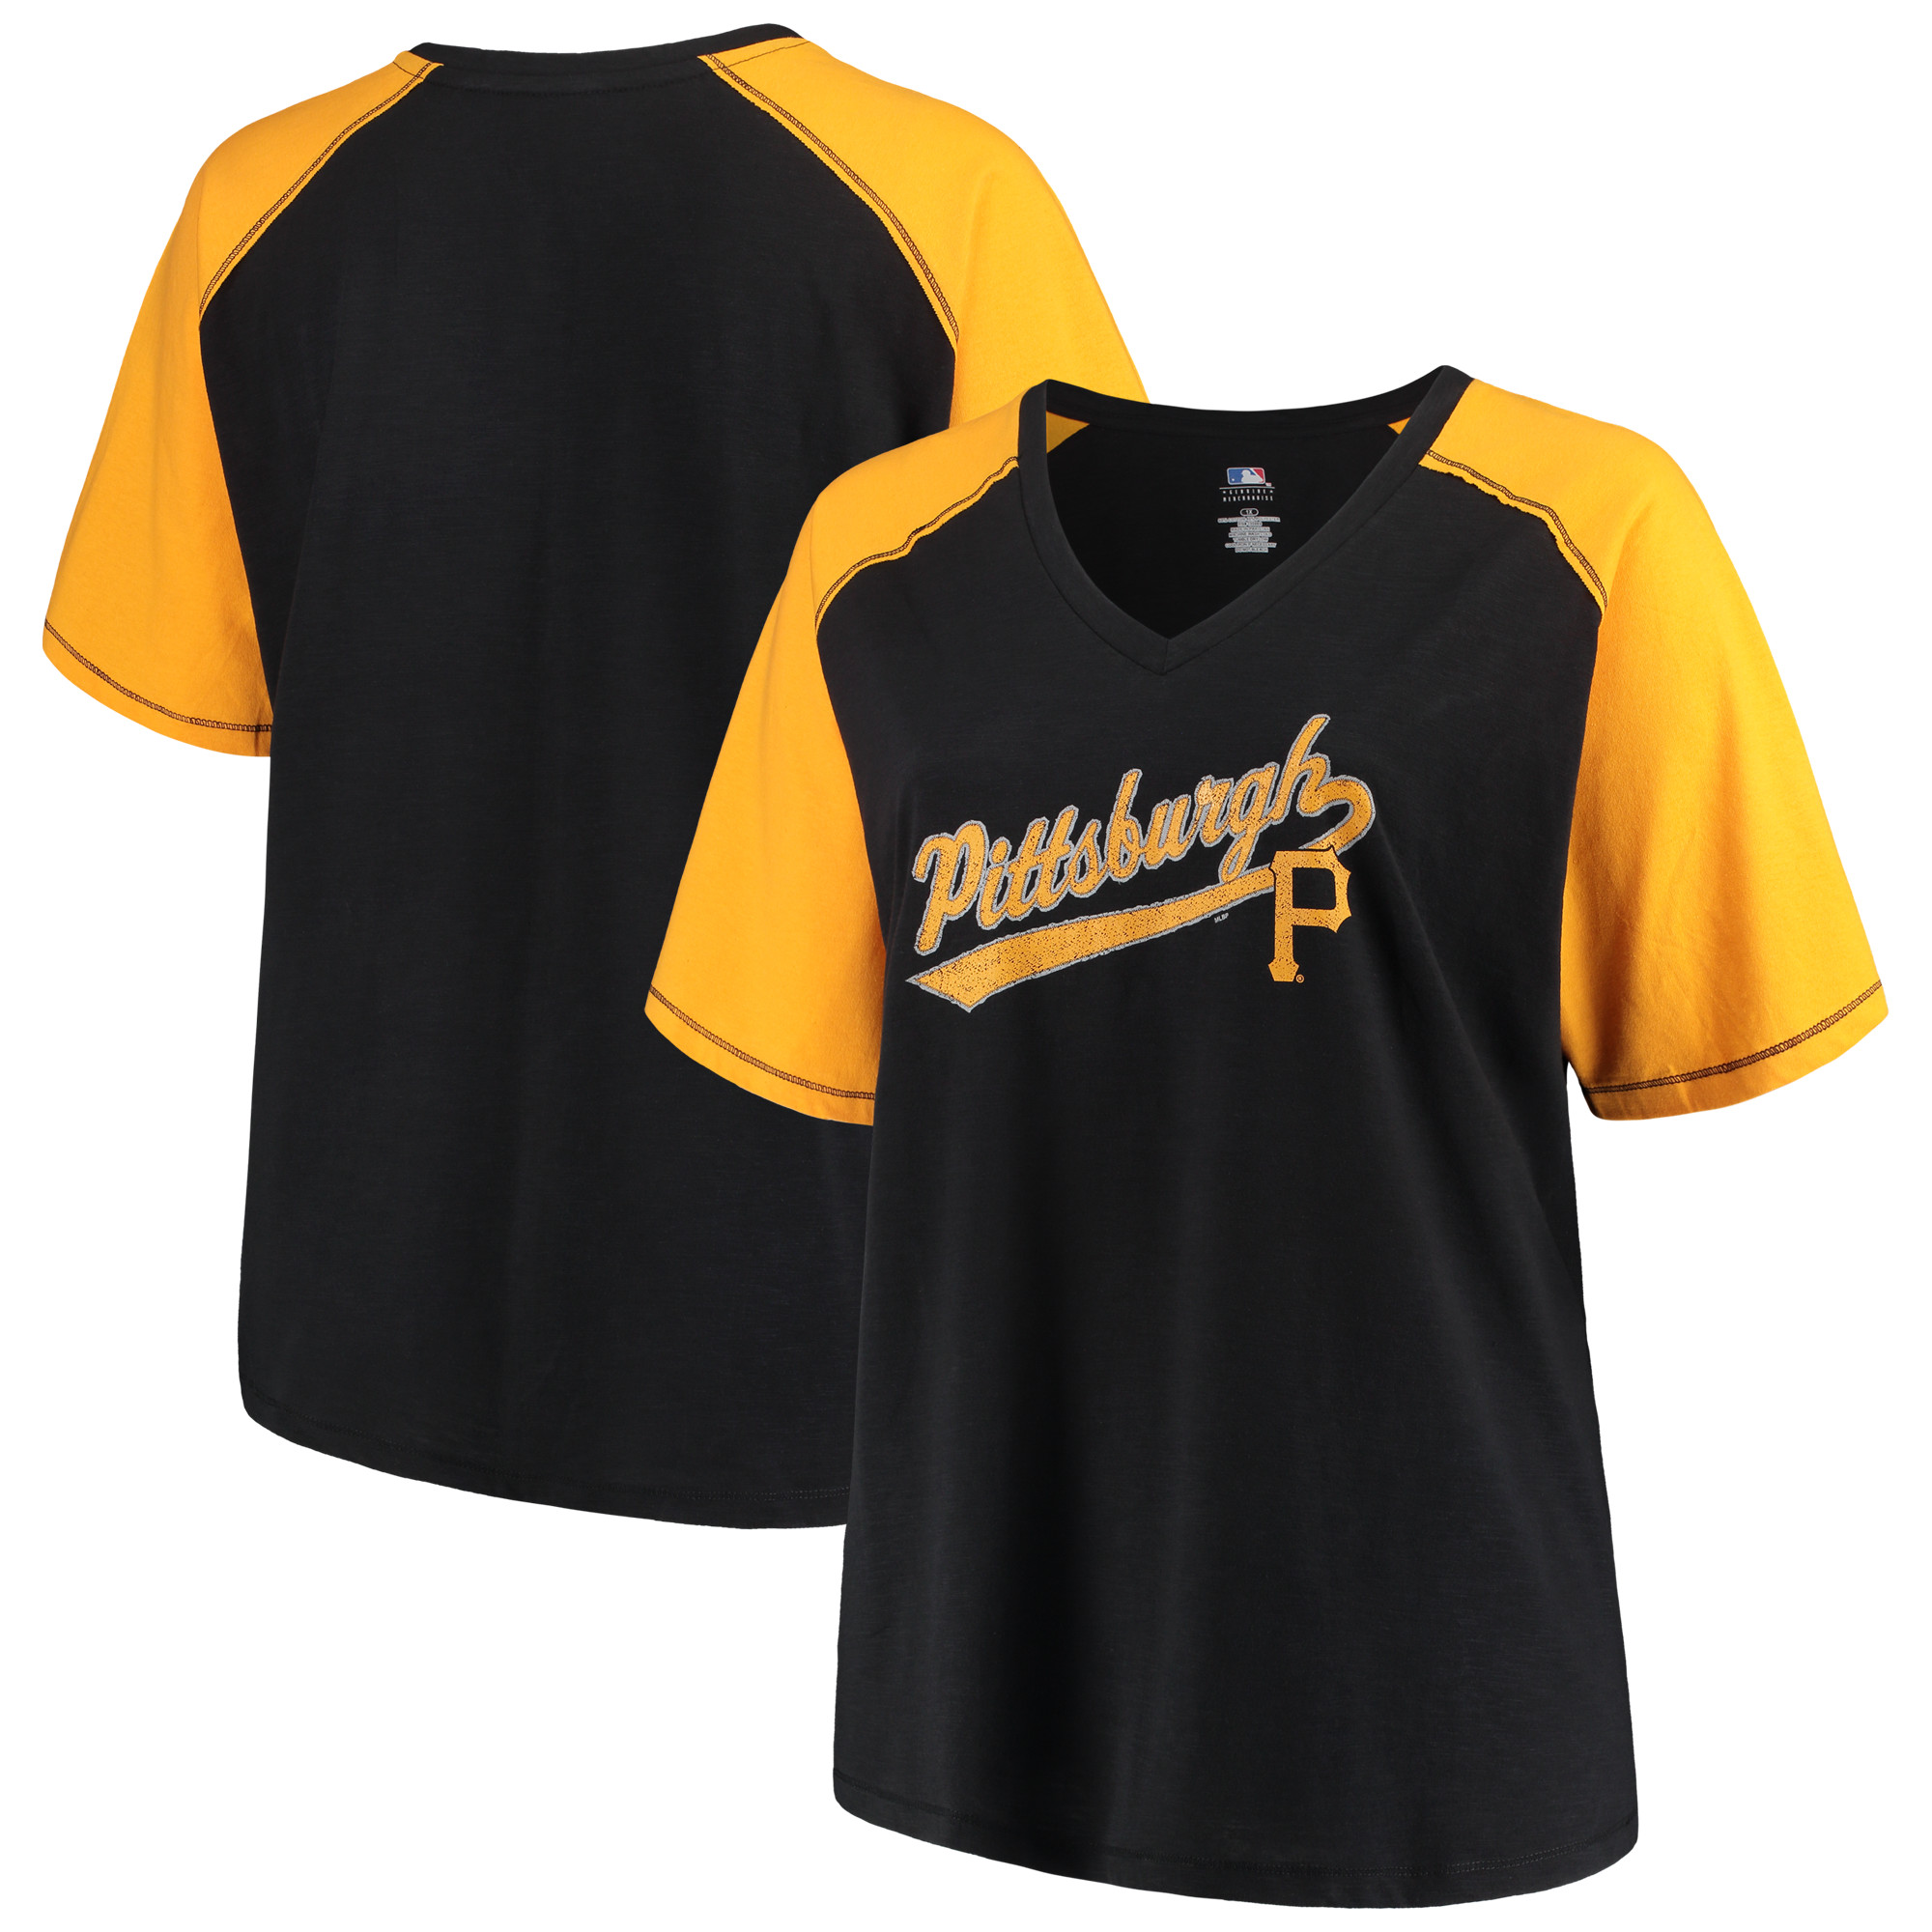 Women's Majestic Black/Gold Pittsburgh Pirates Plus Size High Percentage Raglan V-Neck T-Shirt